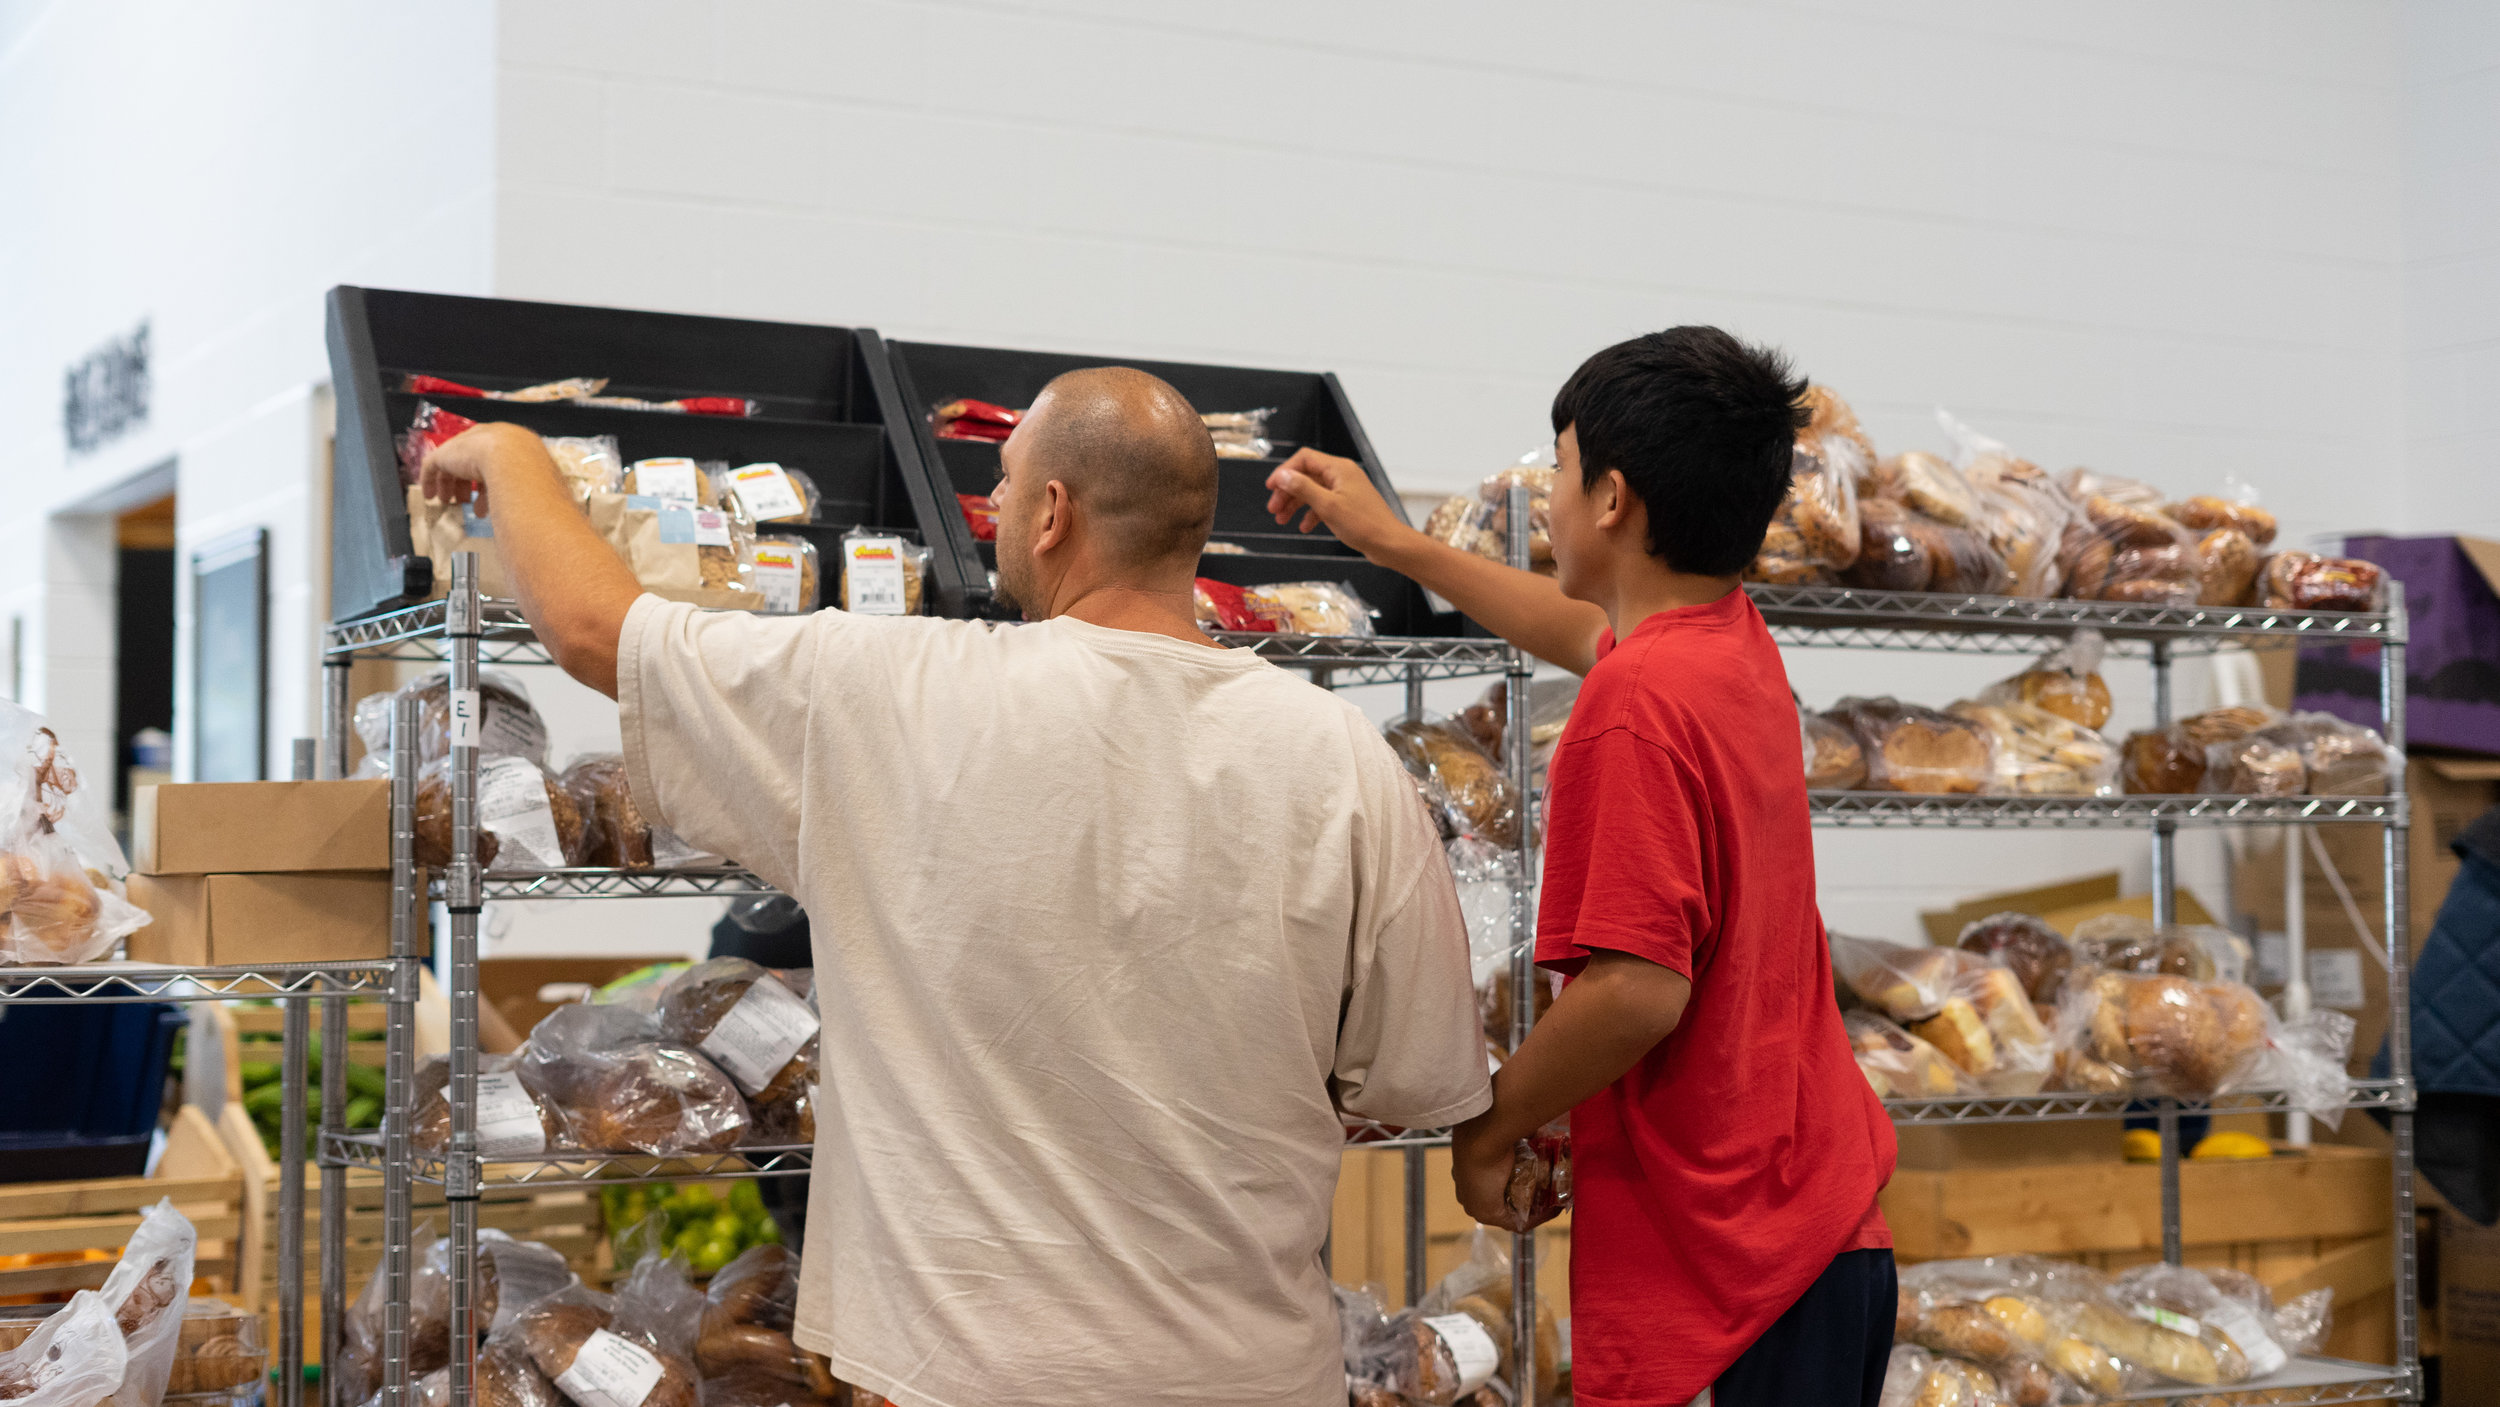 Mandy and his young friend Pete choose bread items from the food pantry. Guests may help themselves to unlimited bread items when they come in for their Food Pantry appointments.